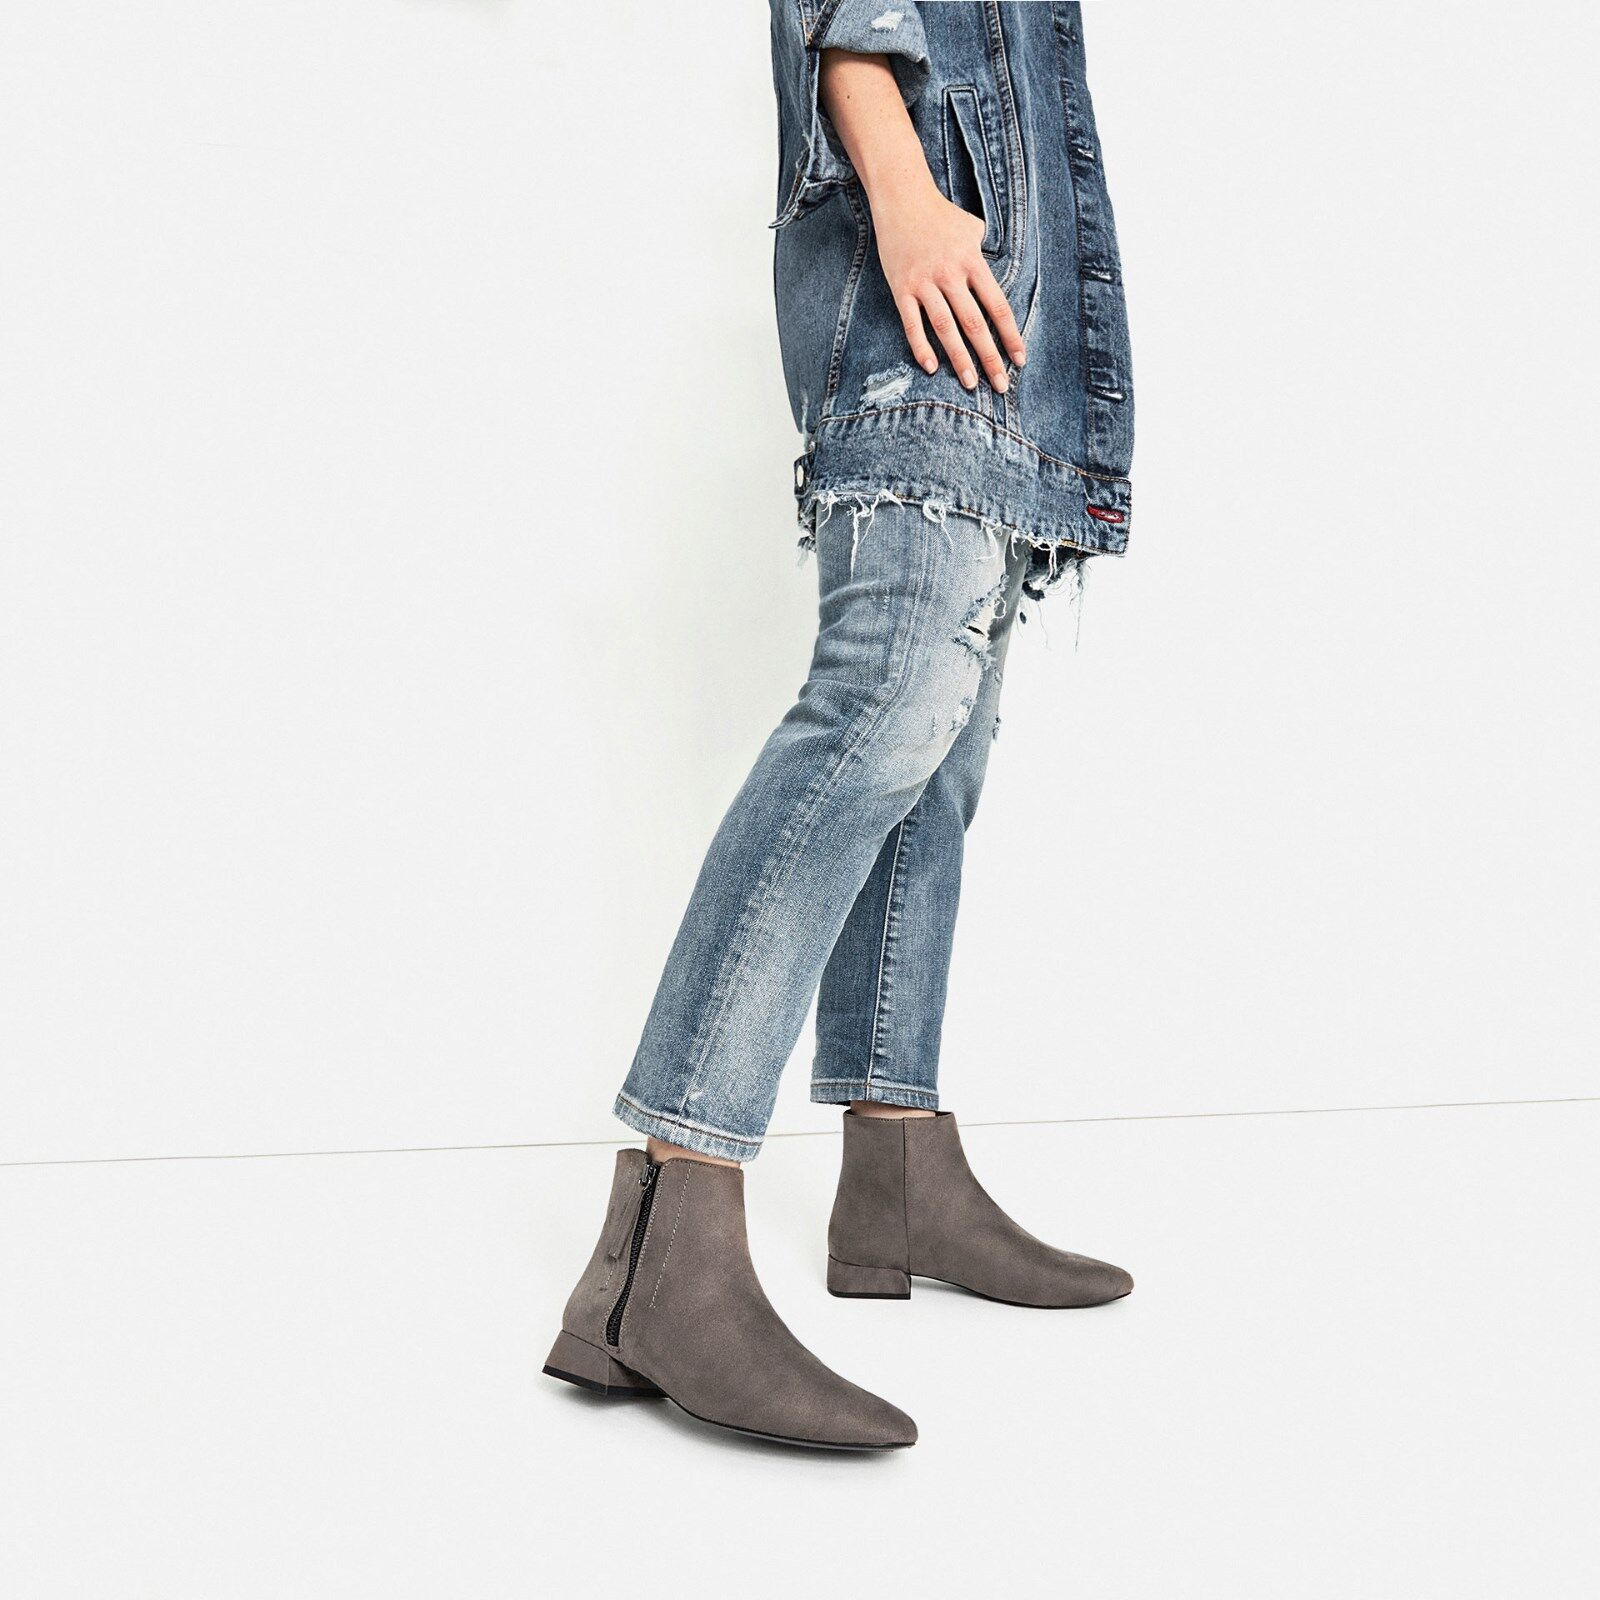 ZARA Woman BNWT Authentic Grey Flat Ankle Boots With Zip Ref. 6156 101